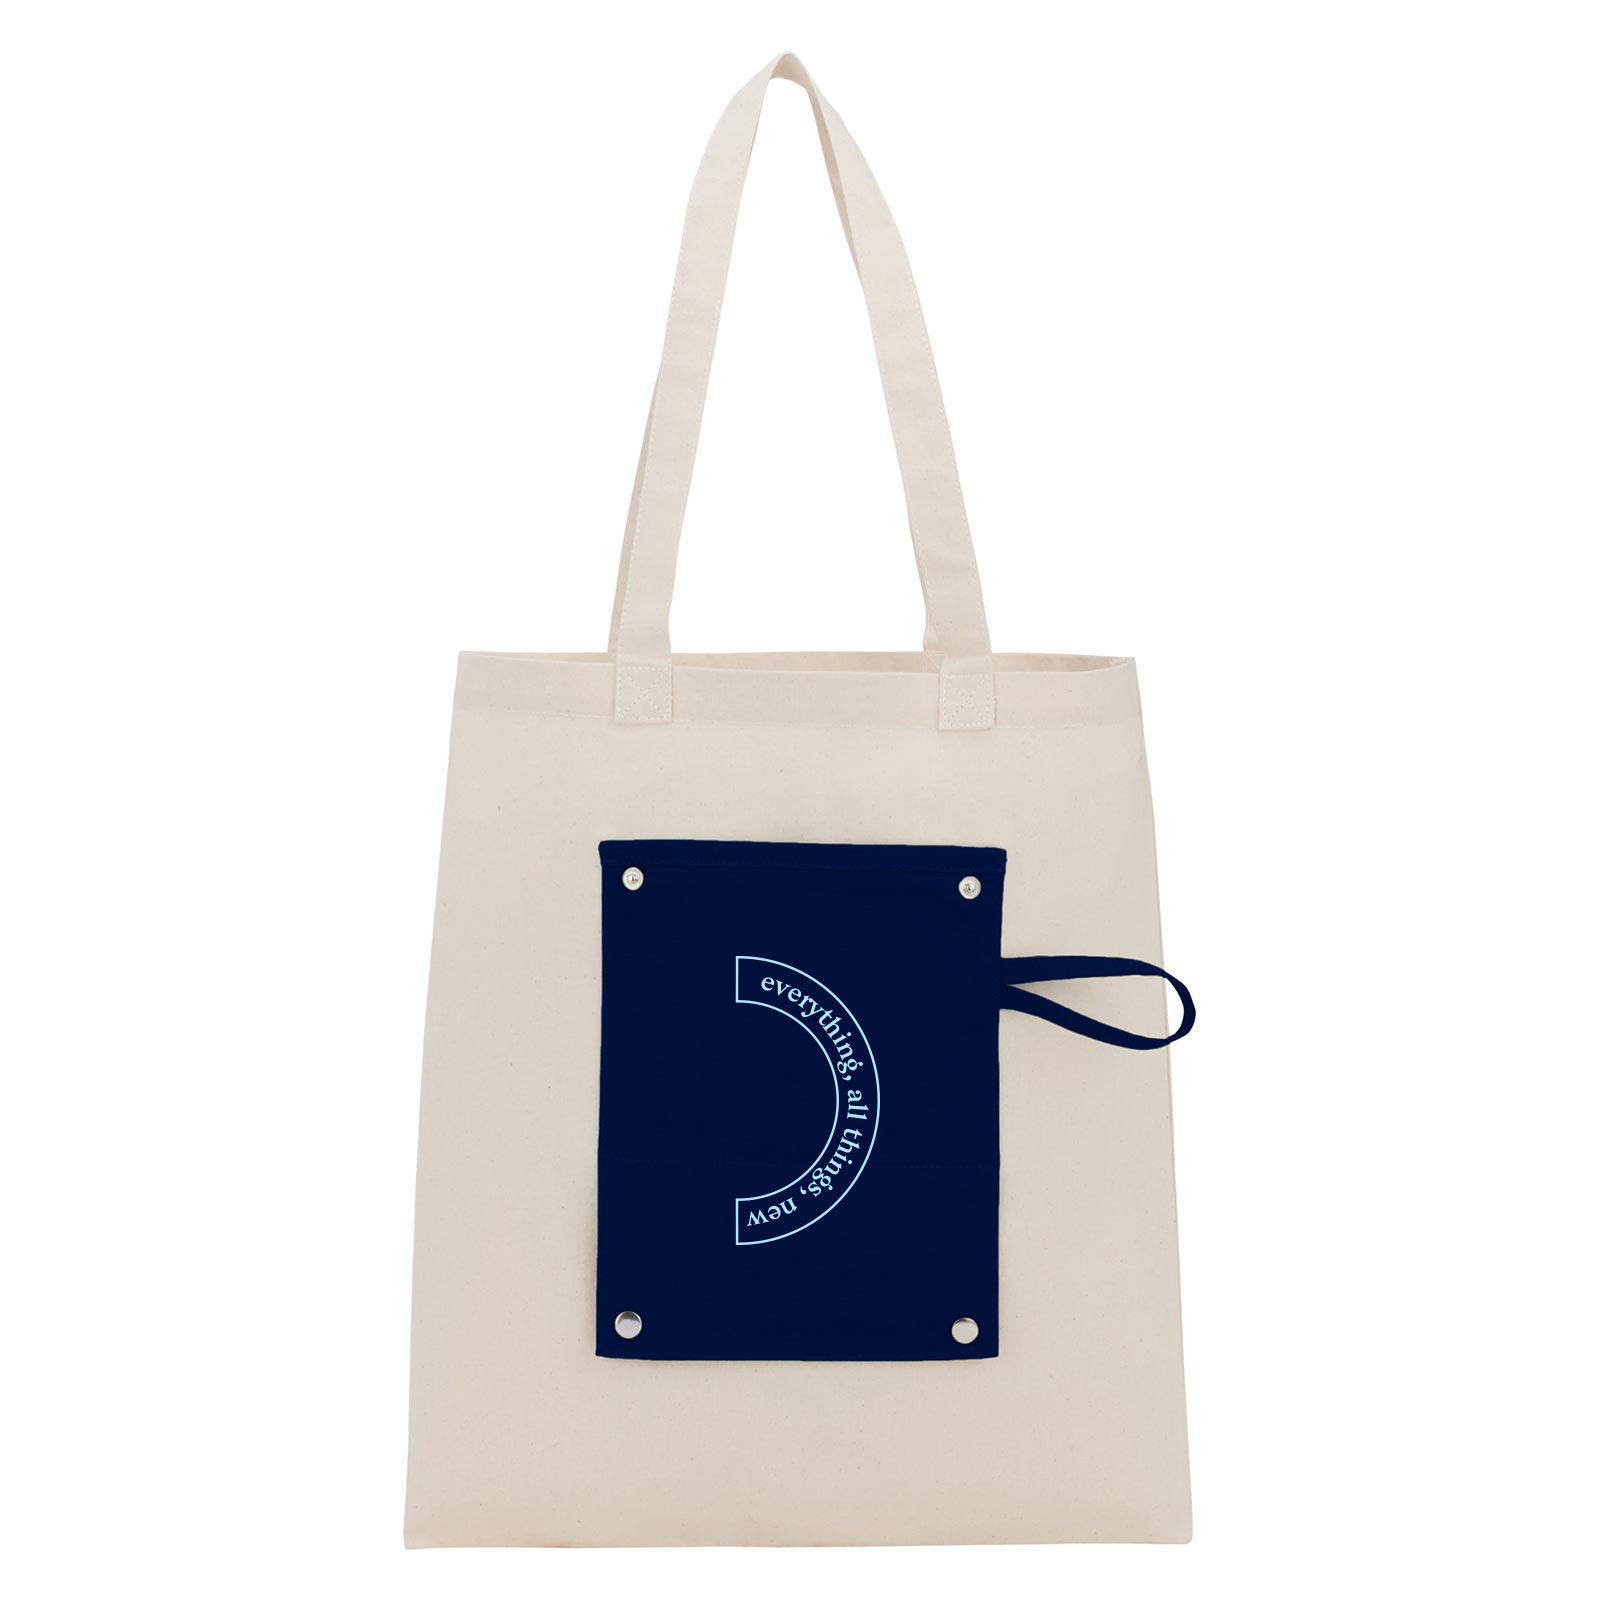 199950 canvas snap tote one color imprint only